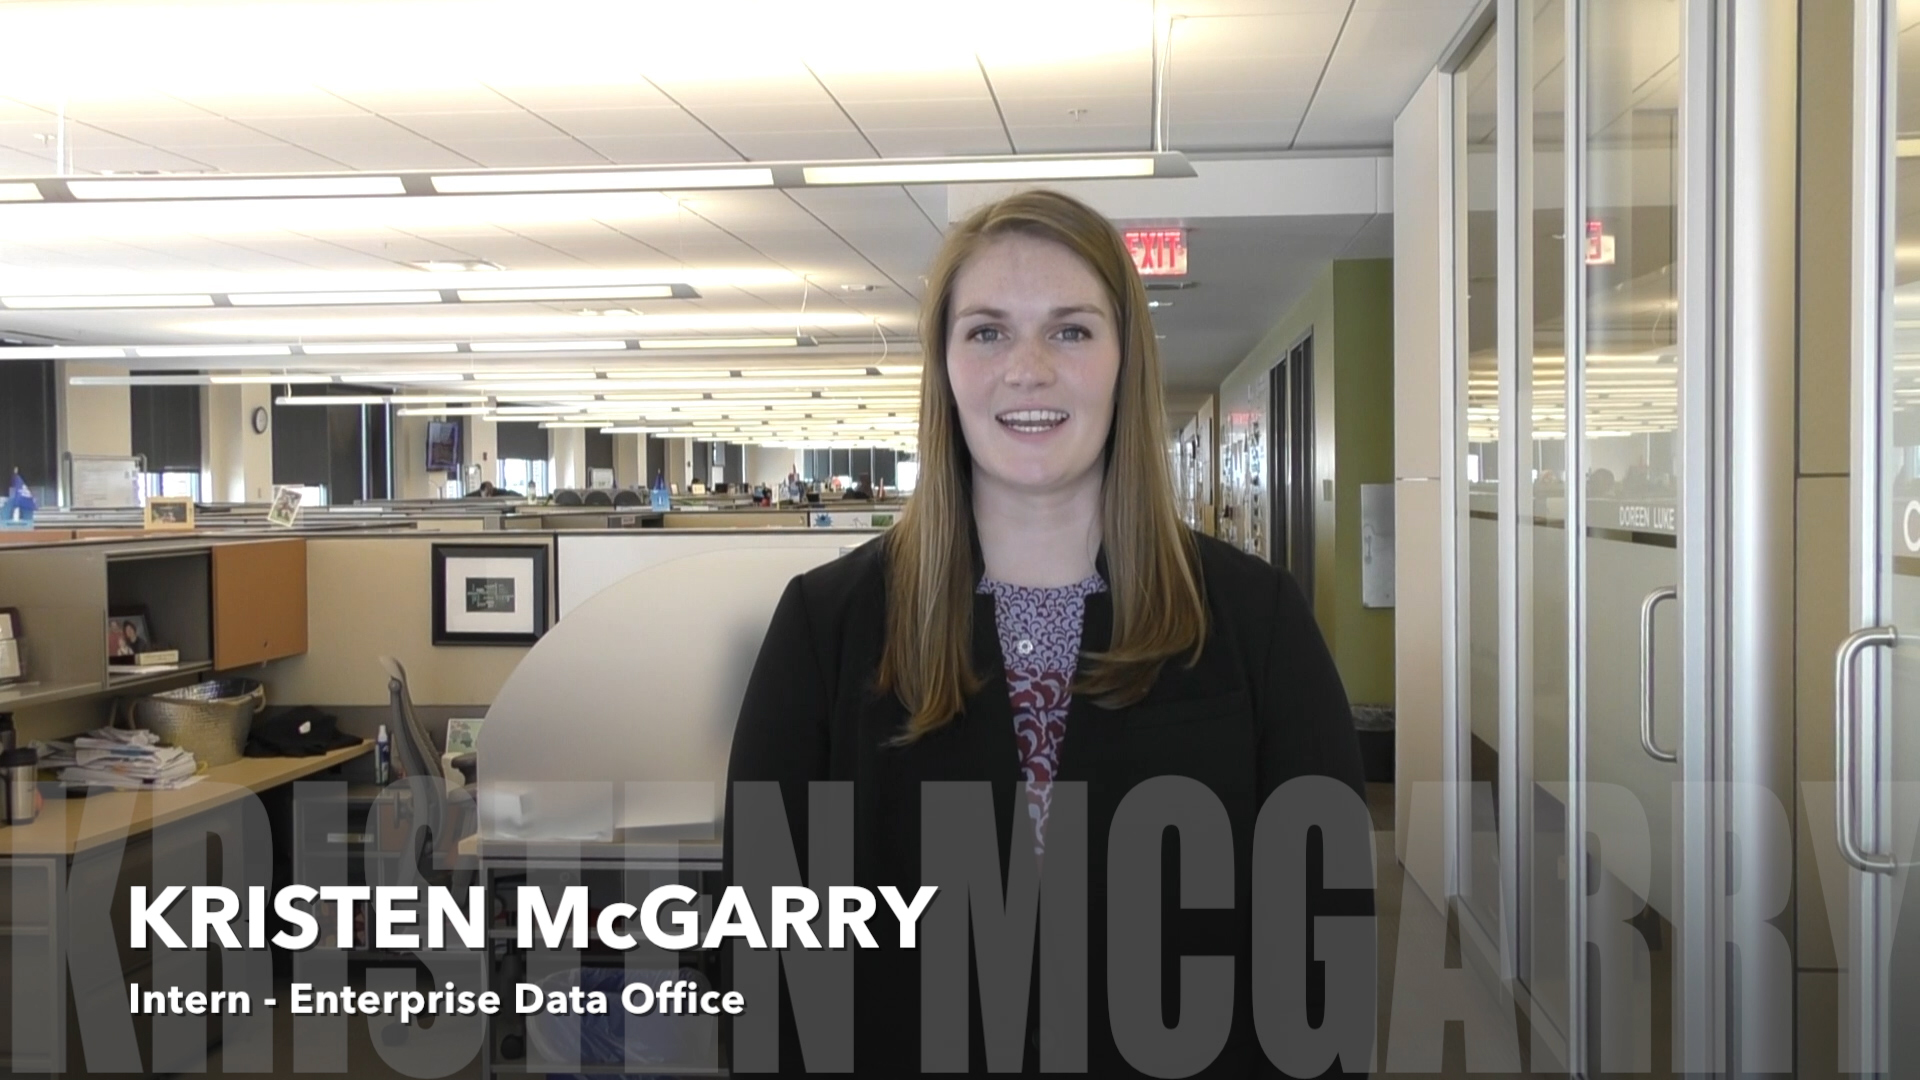 A Day in the Life - Kristin McGarry